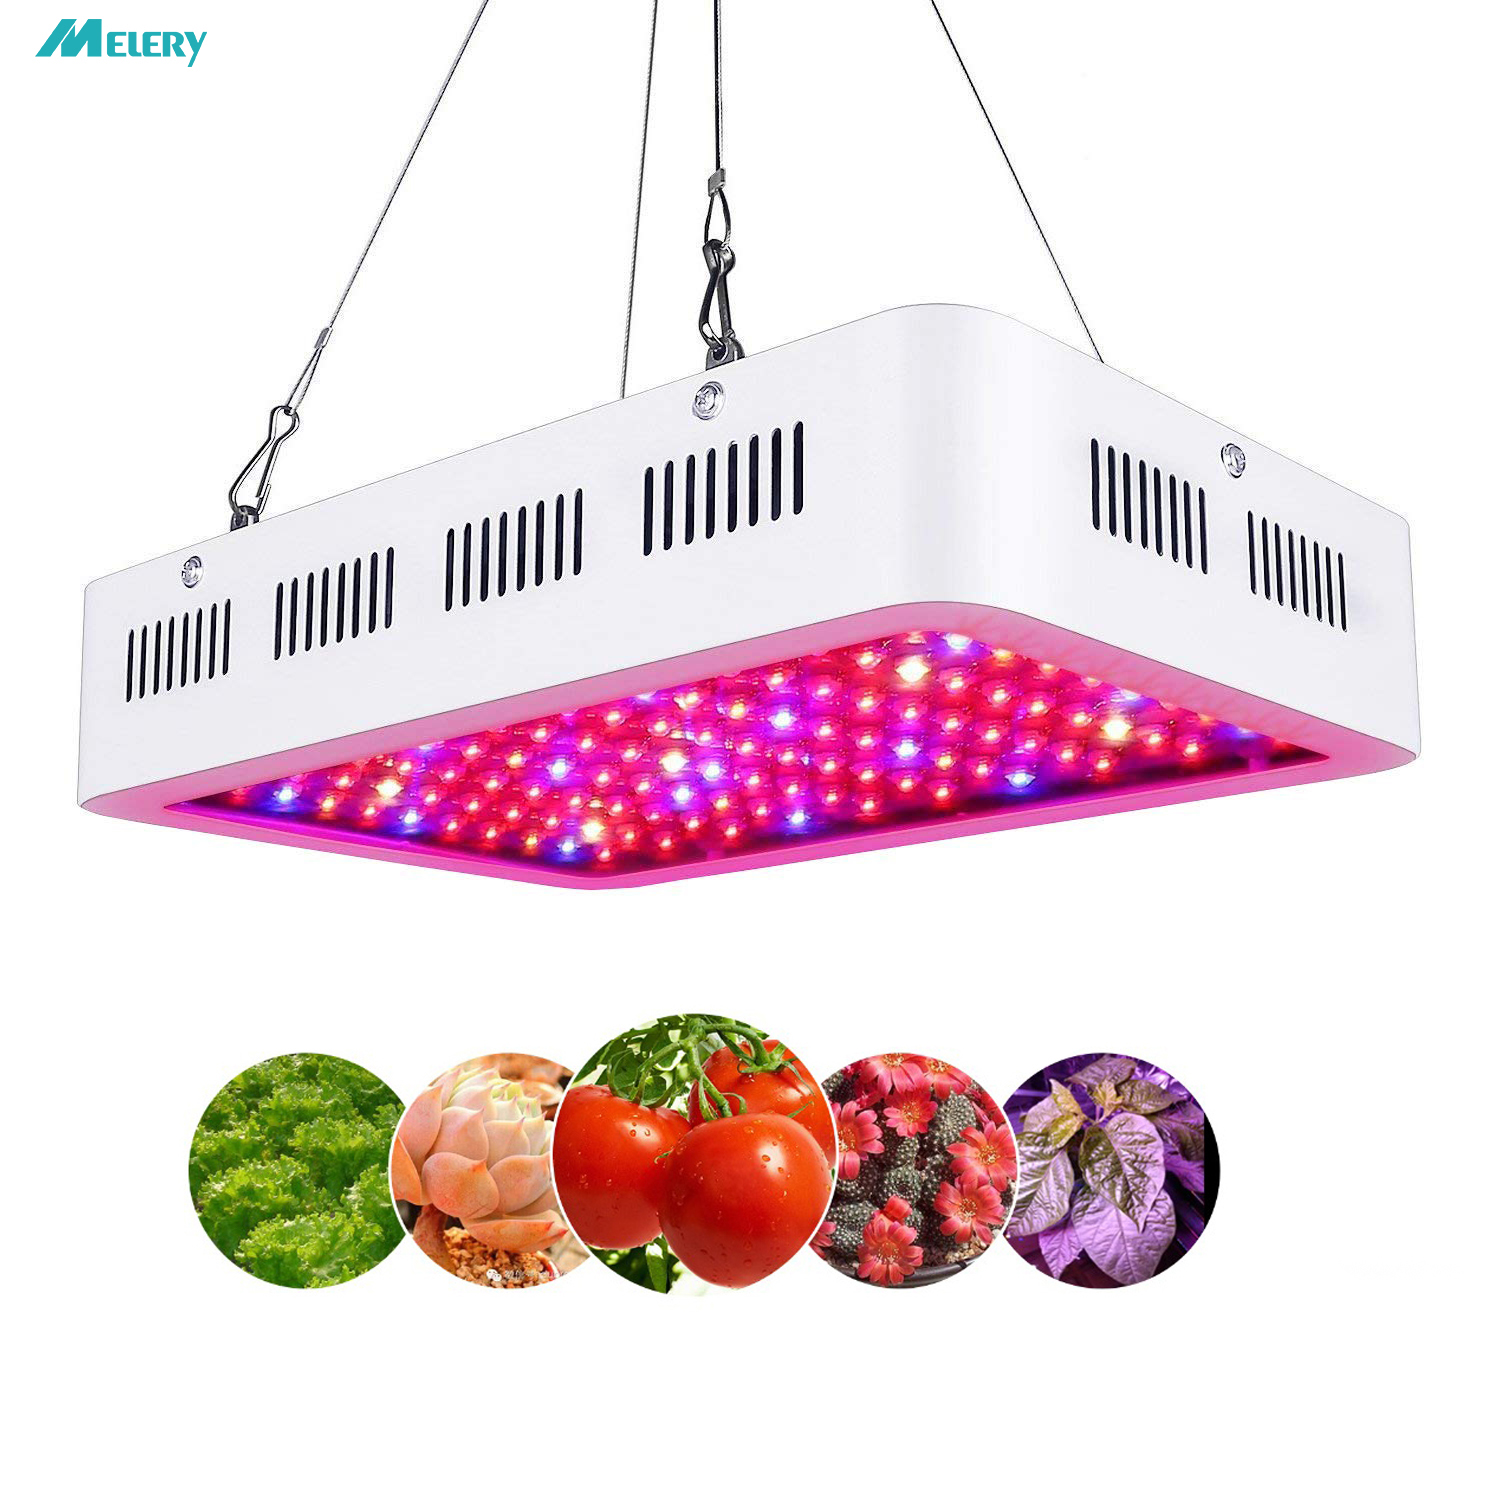 LED Grow Light 300 600 1000W Full Spectrum for Indoor Plant Lamp with UV IR Light